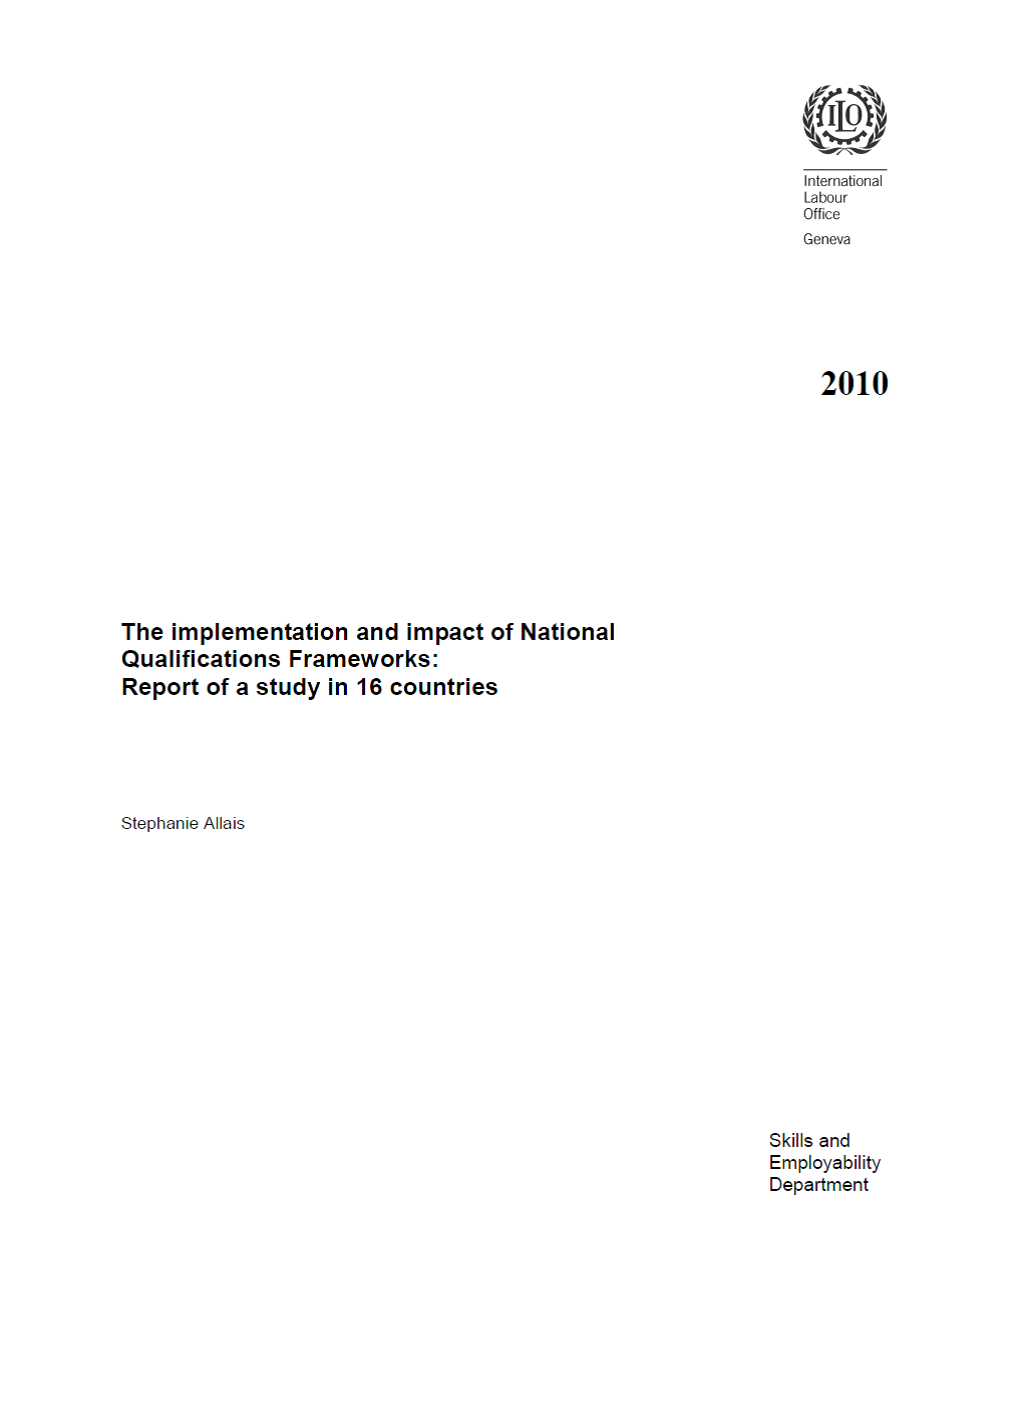 The implementation and impact of National Qualifications Frameworks: Report of a study in 16 countries